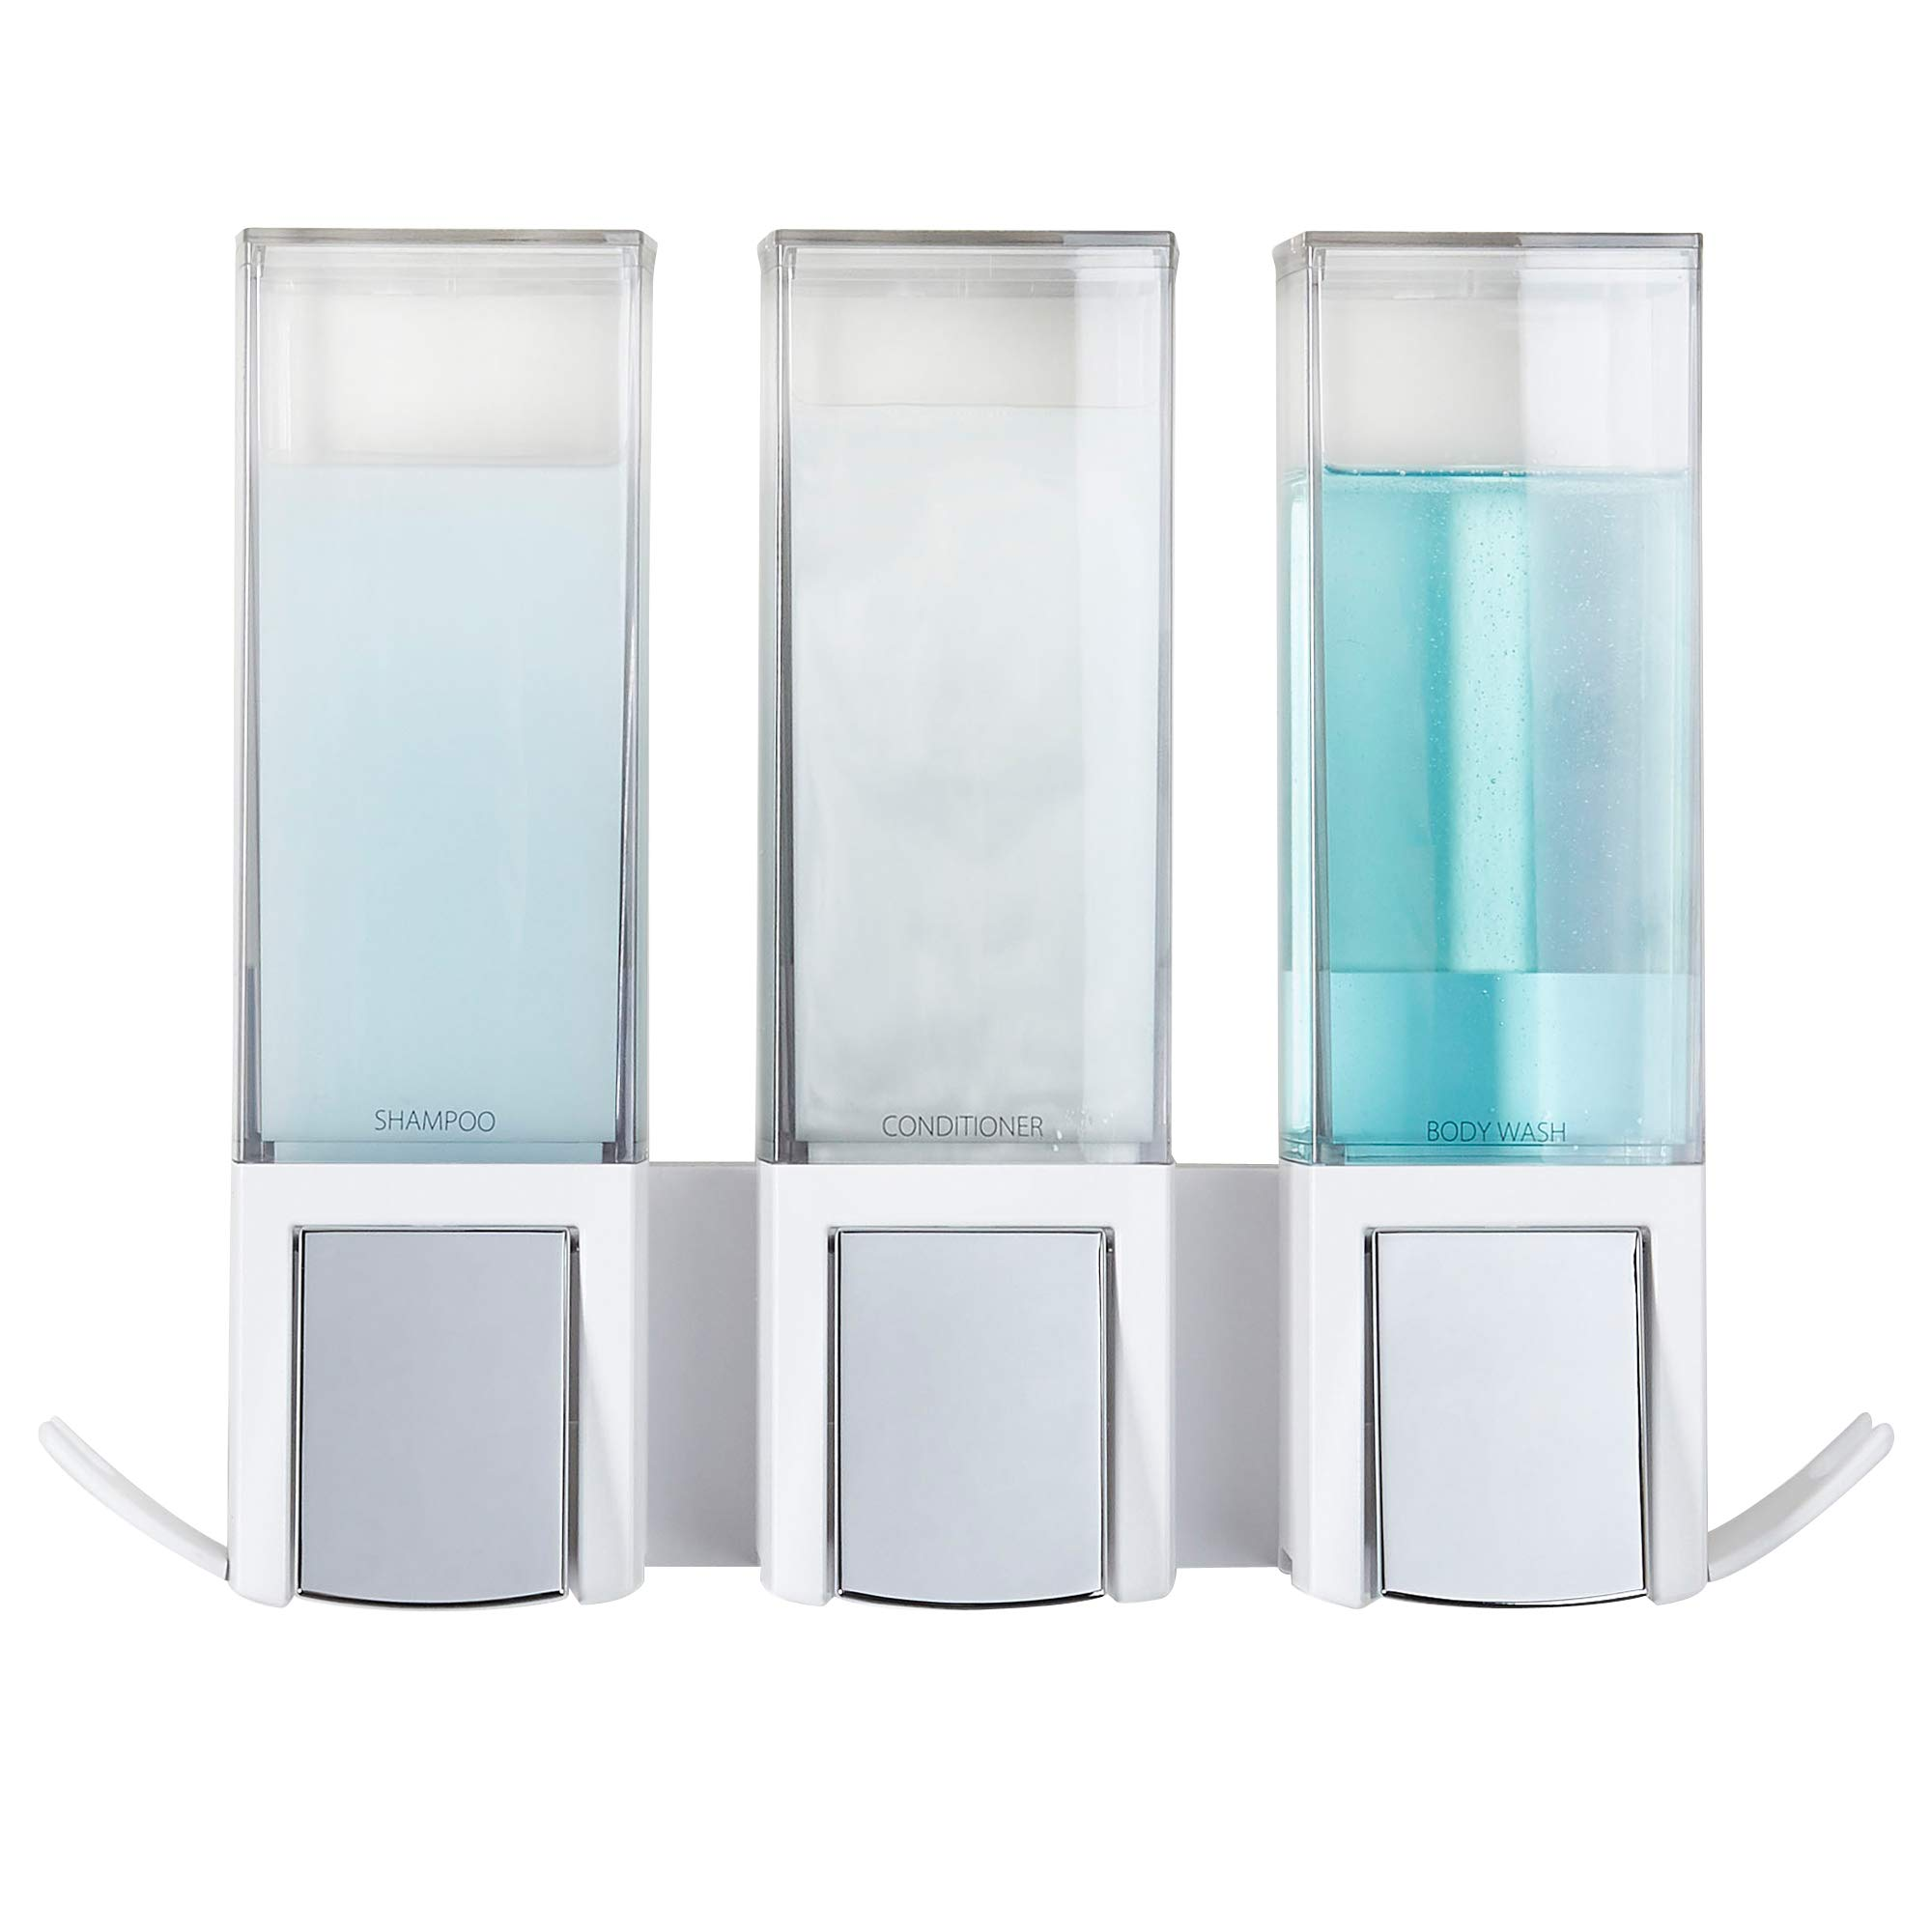 Better Living Products 77354 CLEVER Soap and Shower Triple Dispenser, White/Chrome